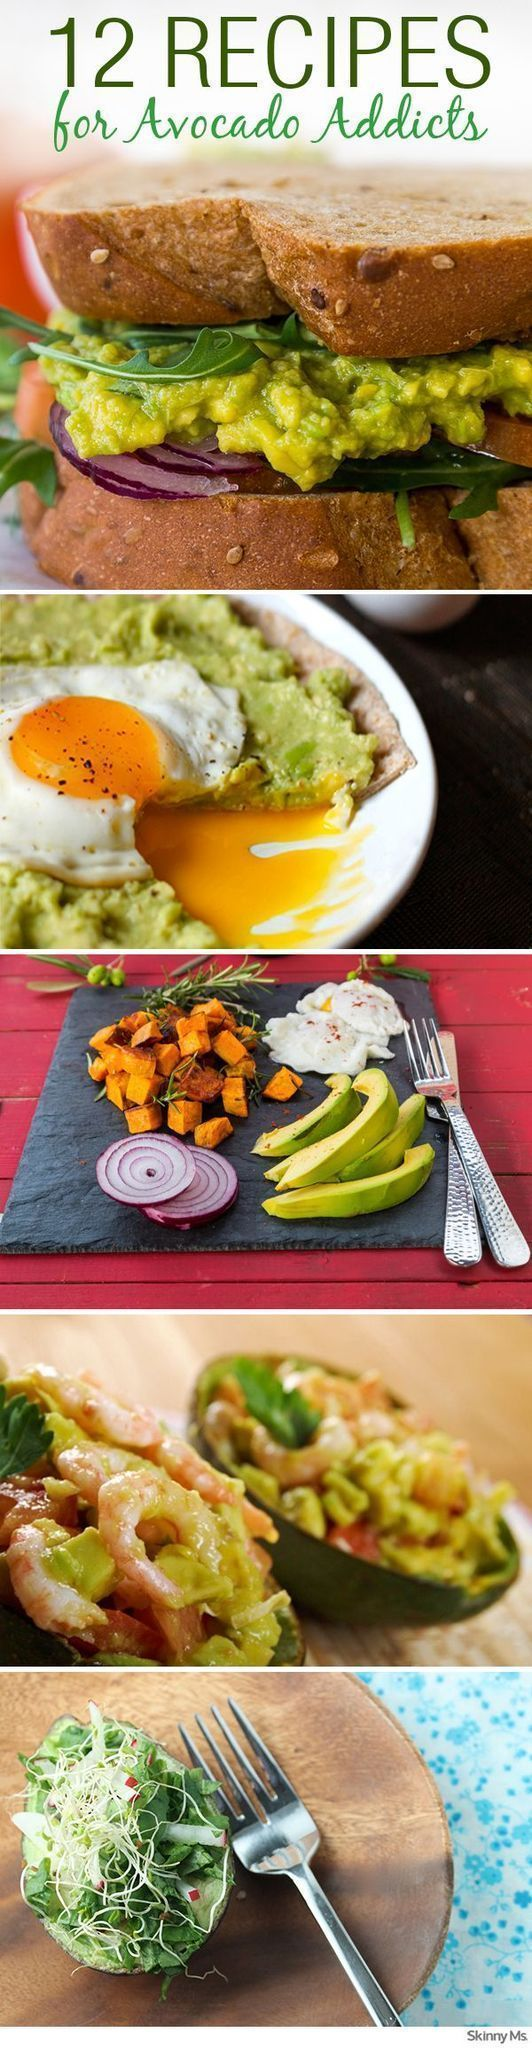 I know I am one of them: an Avocado Addict!! Try these 12 Recipes for Avocado Addicts. #SkinnyMs